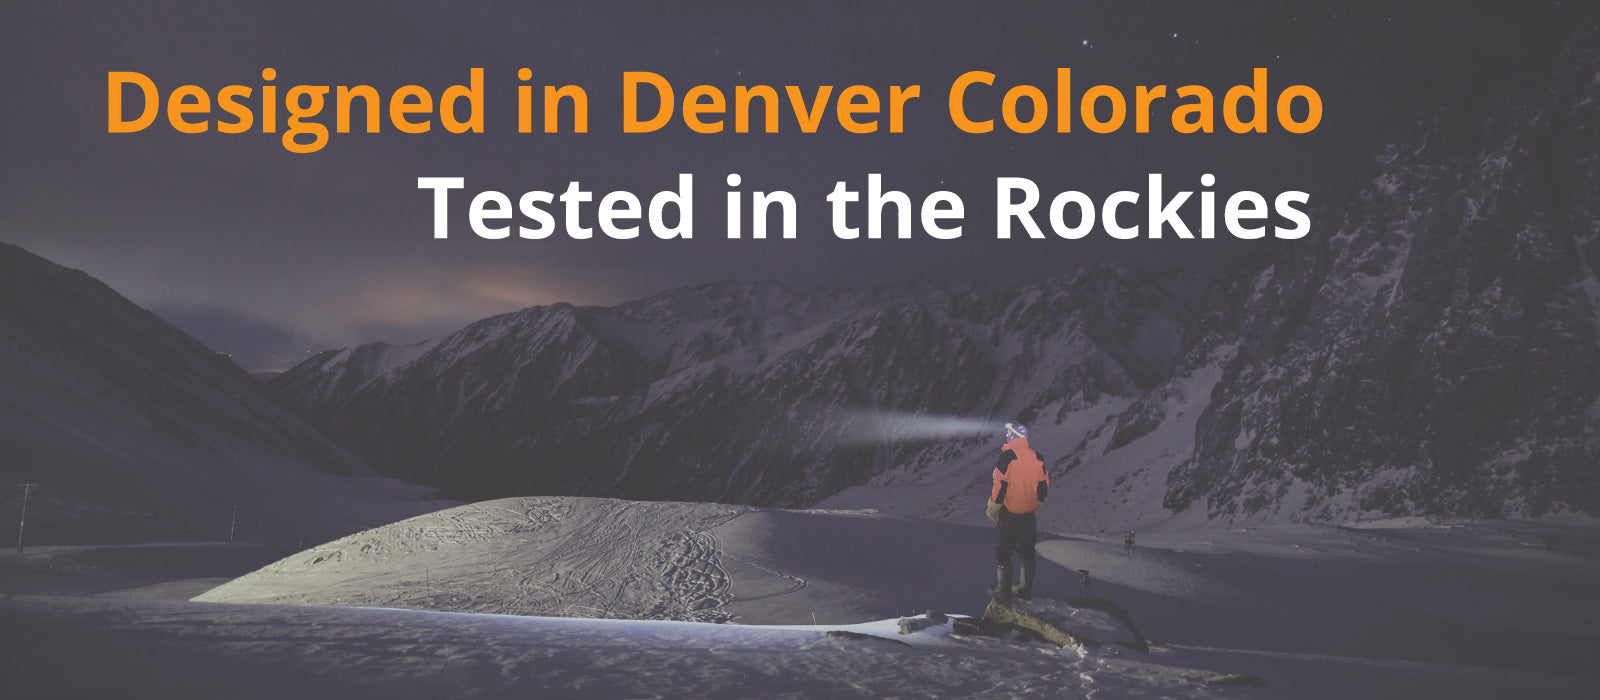 anseris heated clothing is located in denver colorado where we design and test all of our products in the rocky mountains